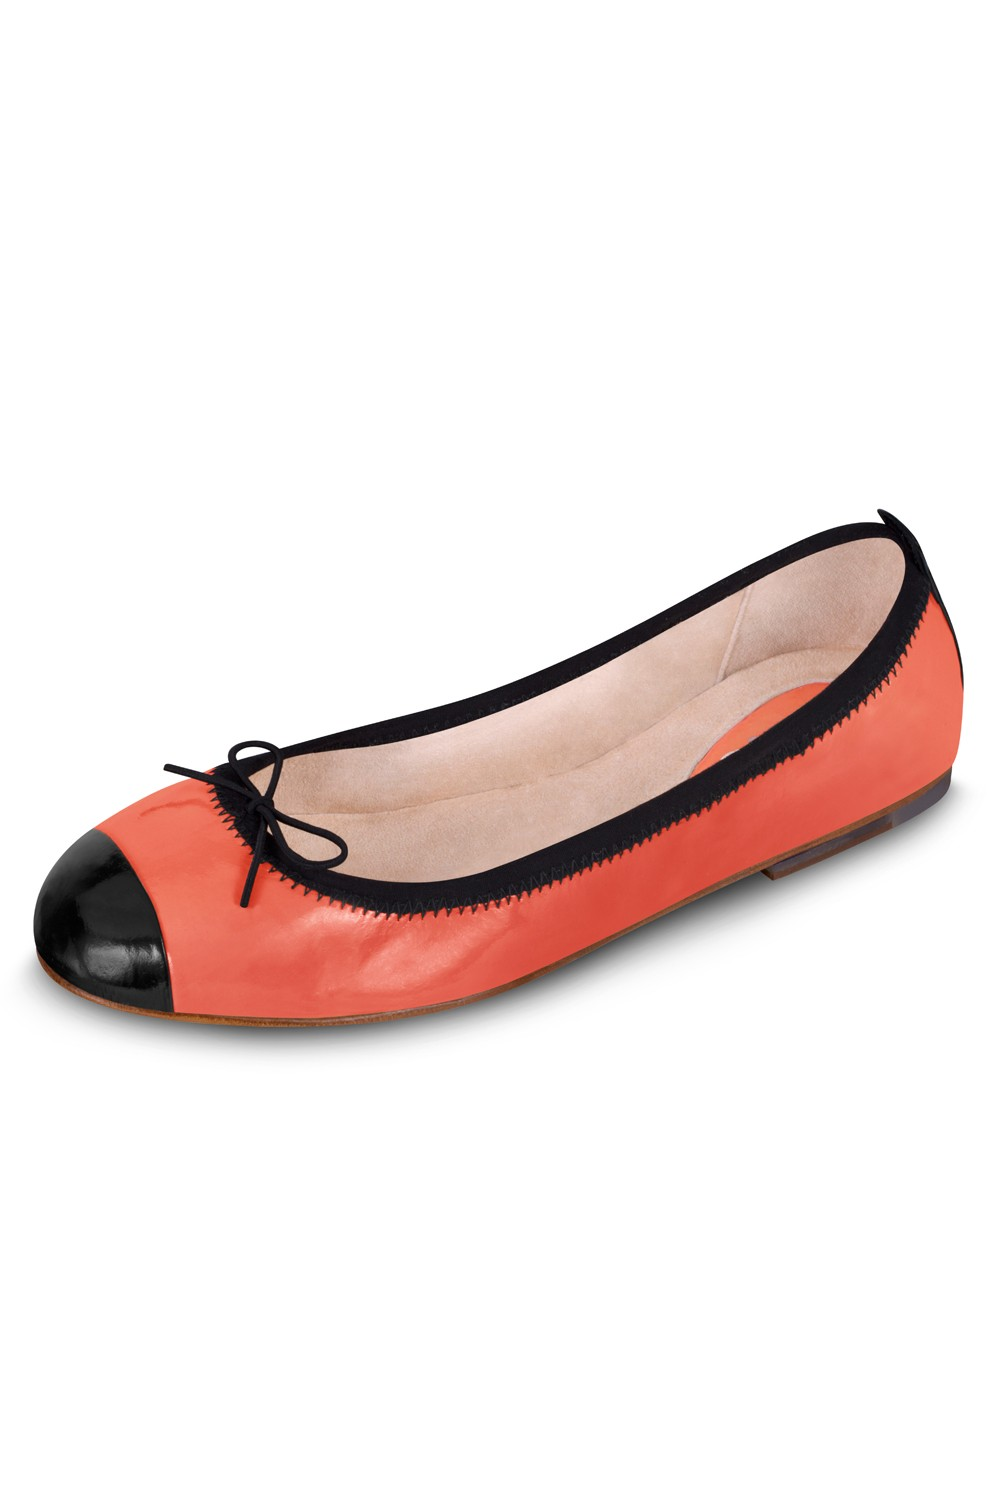 Luxury Ballet Flat - Ladies Womens Fashion Shoes